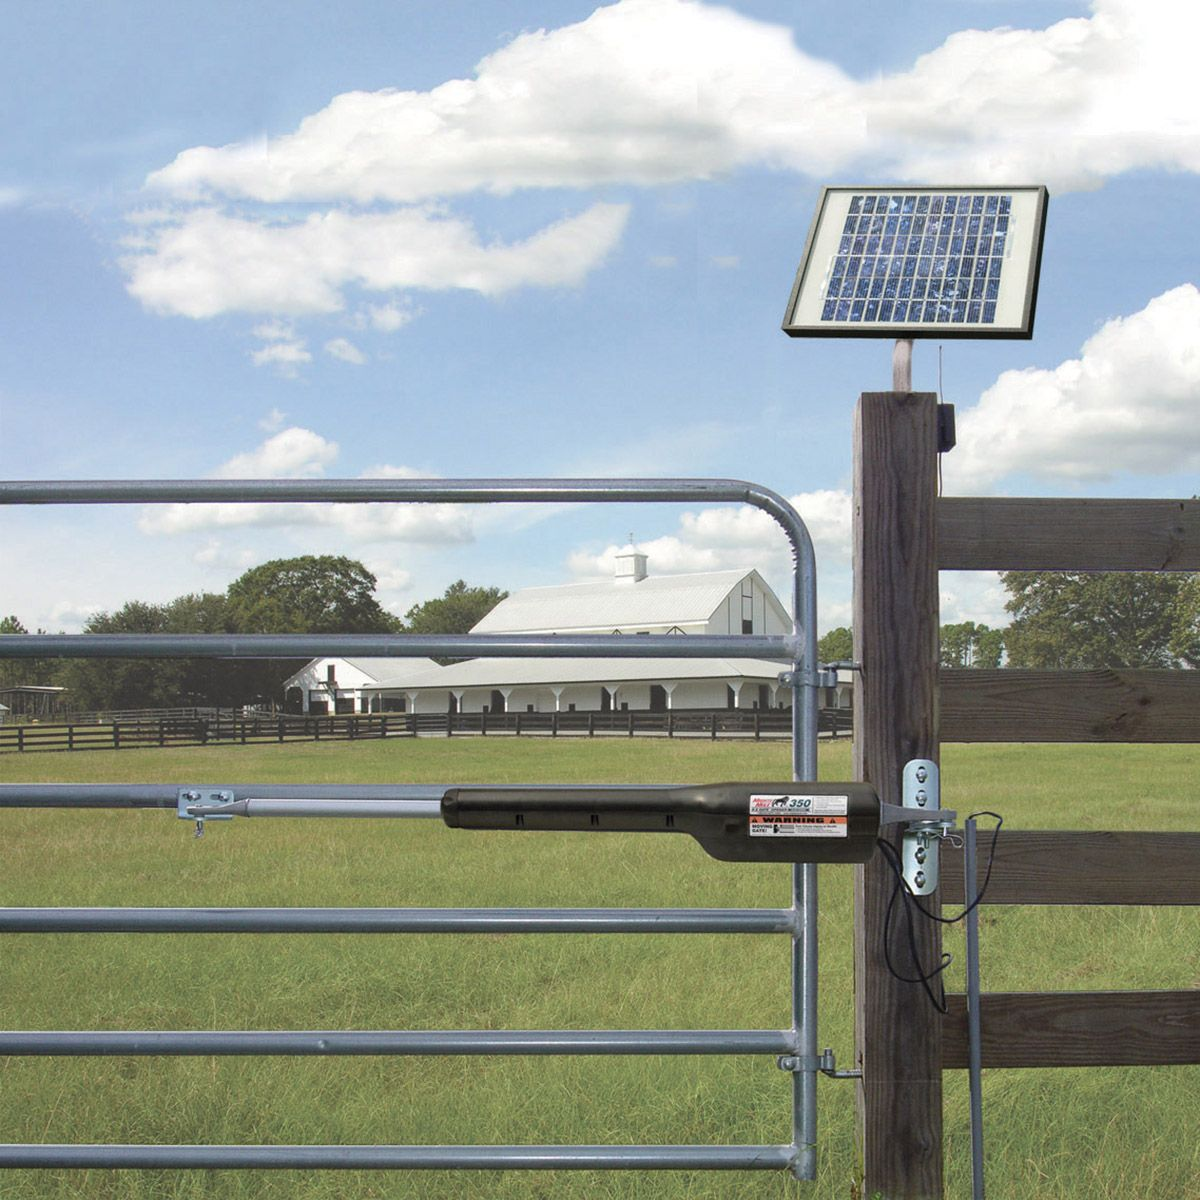 mighty mule fm350 diy automatic gate opener and solar panel broke barn farm pinterest. Black Bedroom Furniture Sets. Home Design Ideas